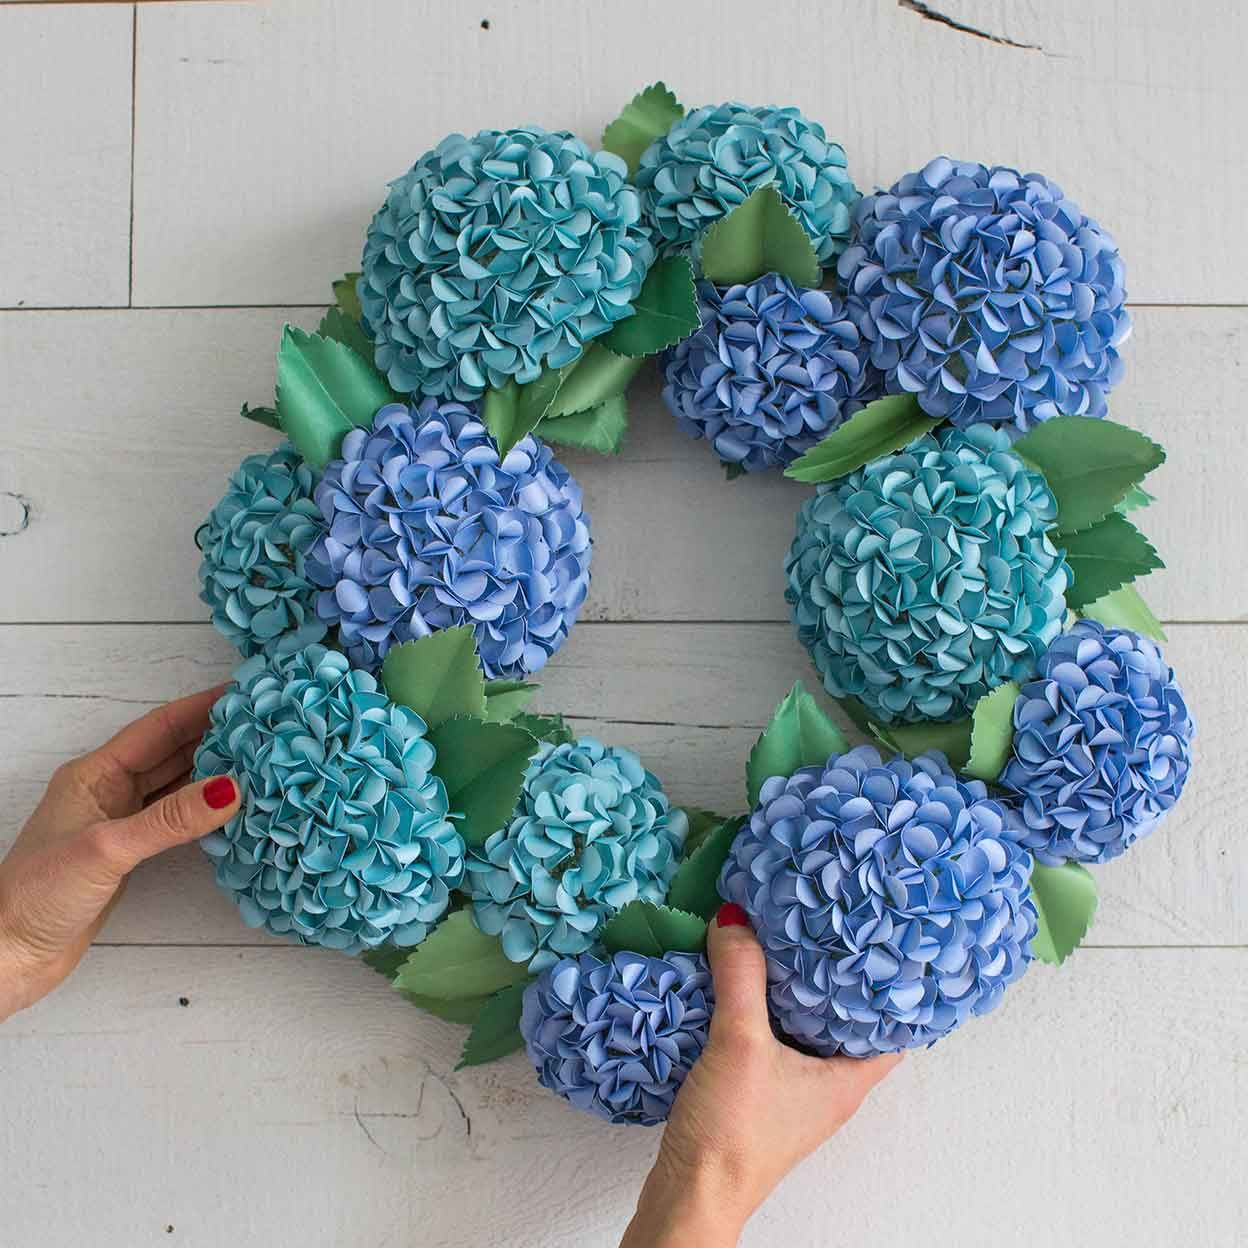 How To Make A Paper Hydrangea Wreath #craft